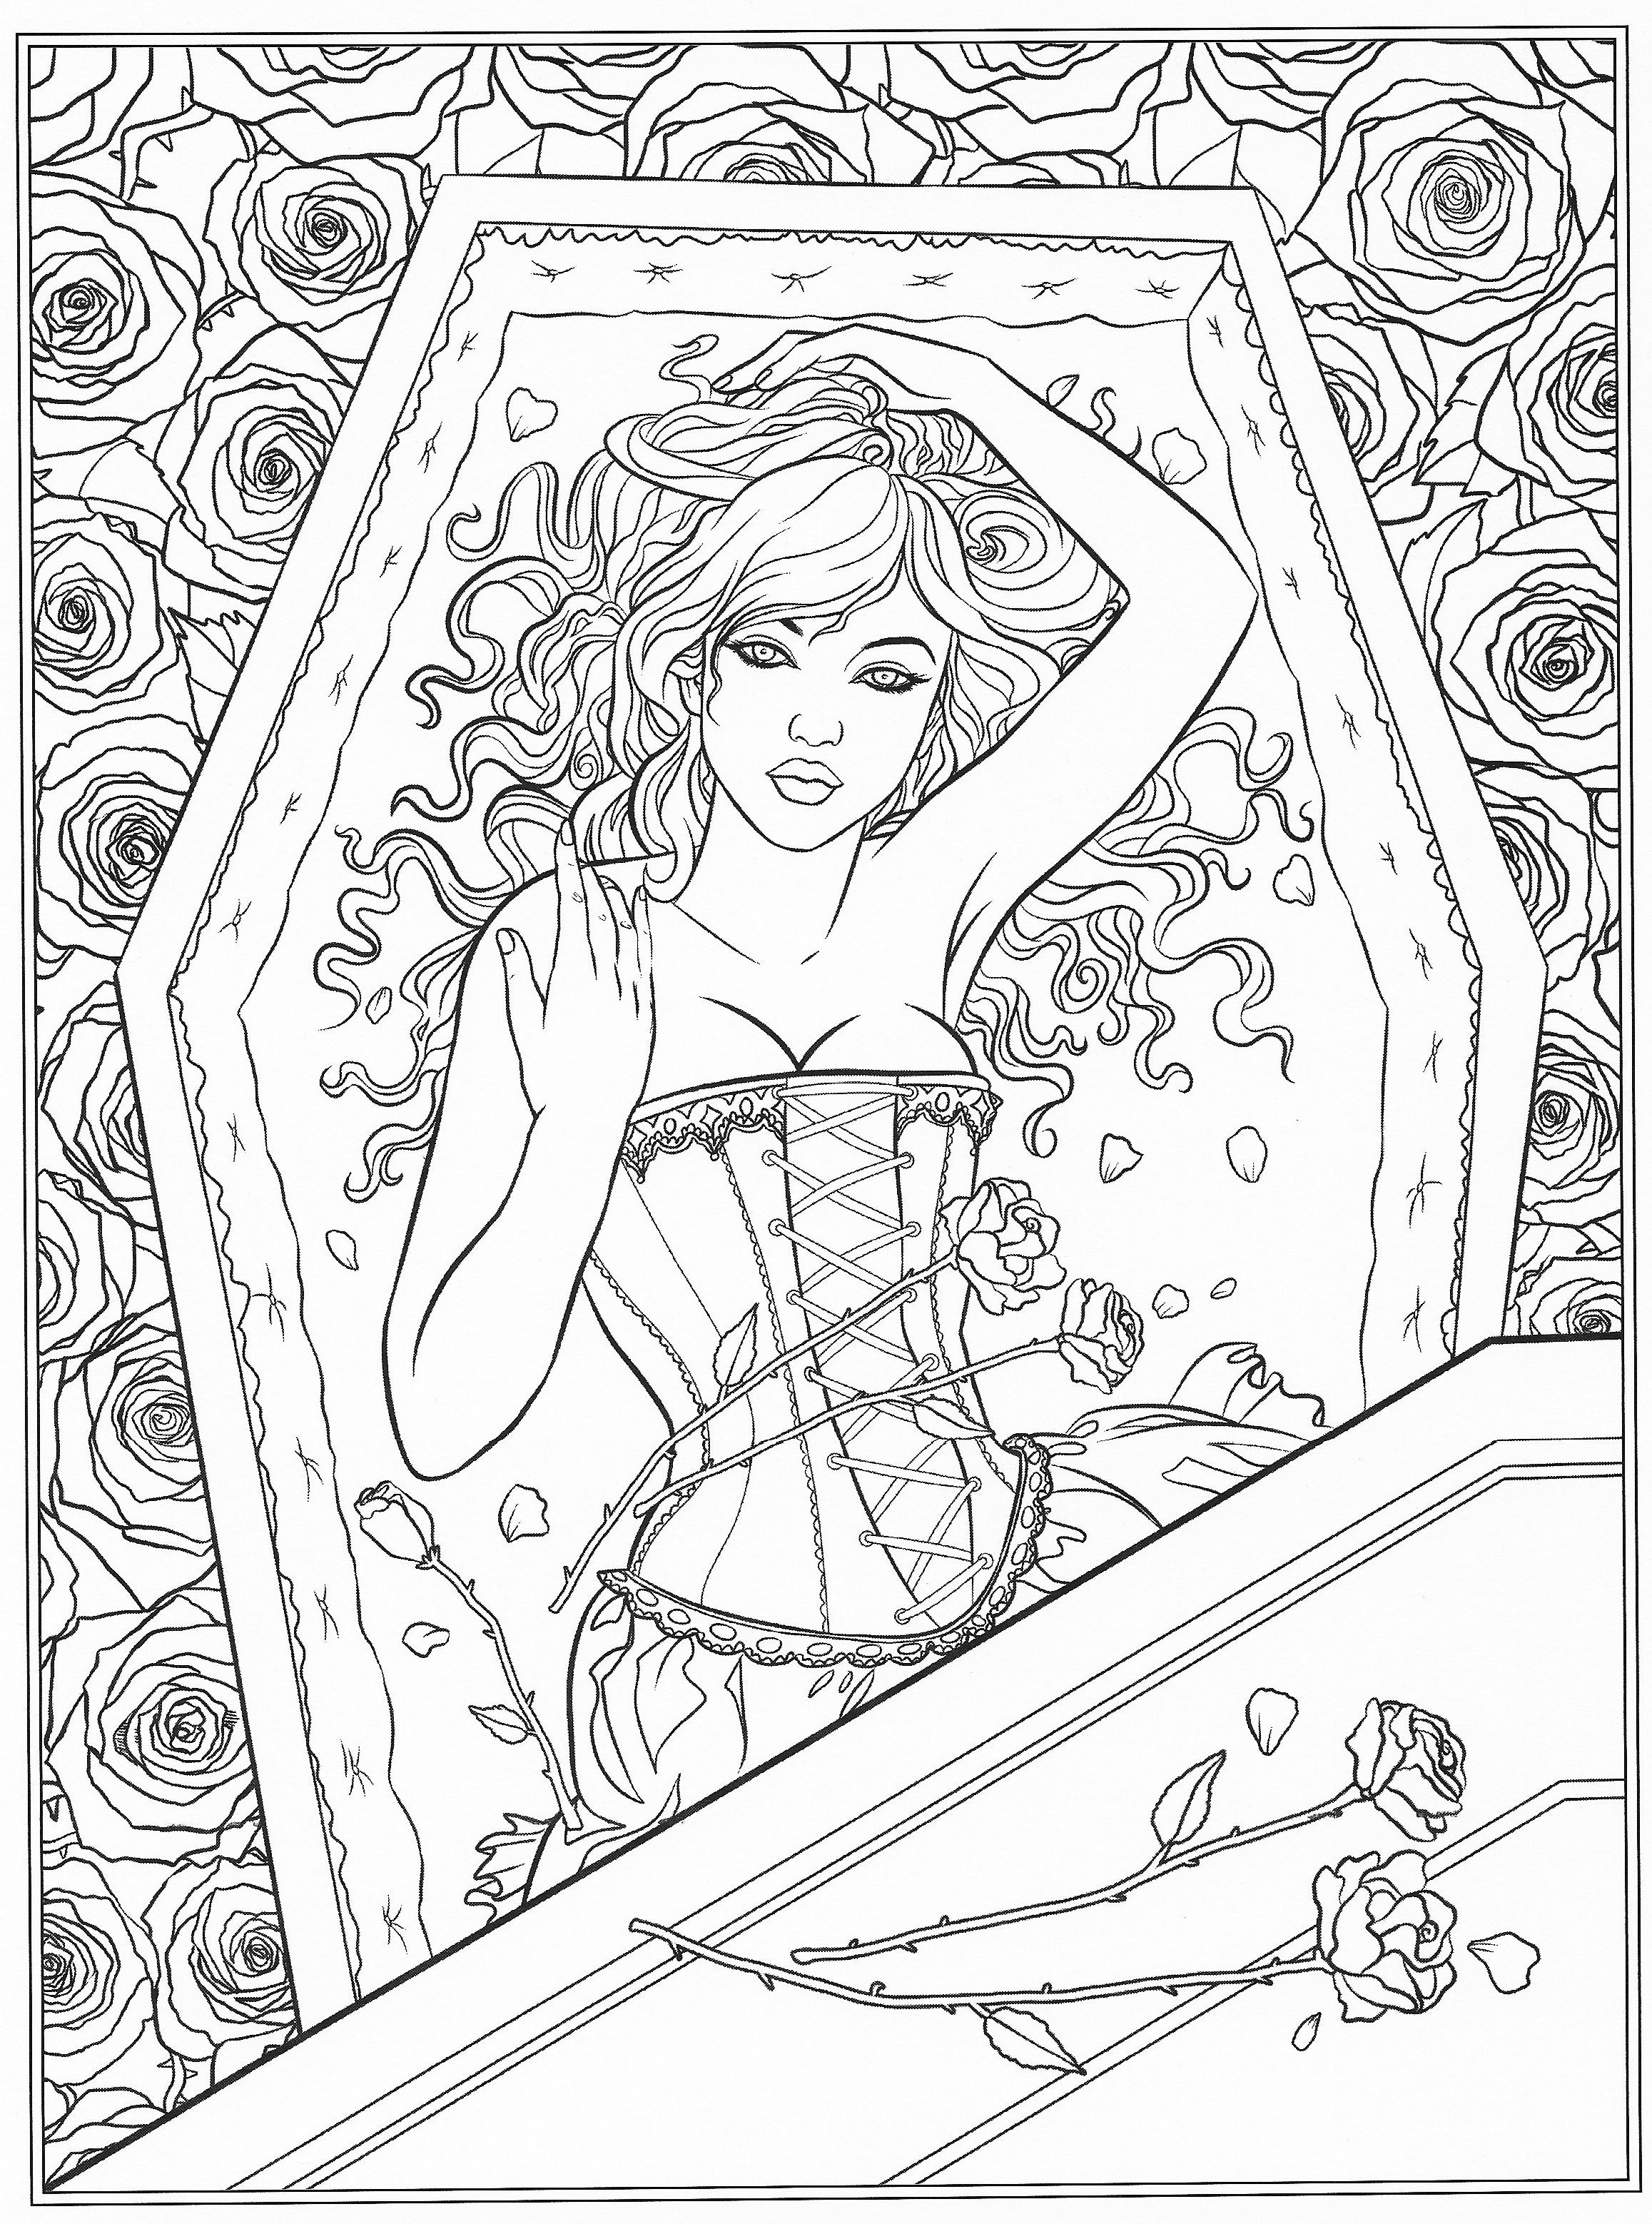 Best ideas about Free Printable Coloring Pages For Adults Dark Fairies . Save or Pin Gothic coloring page Now.